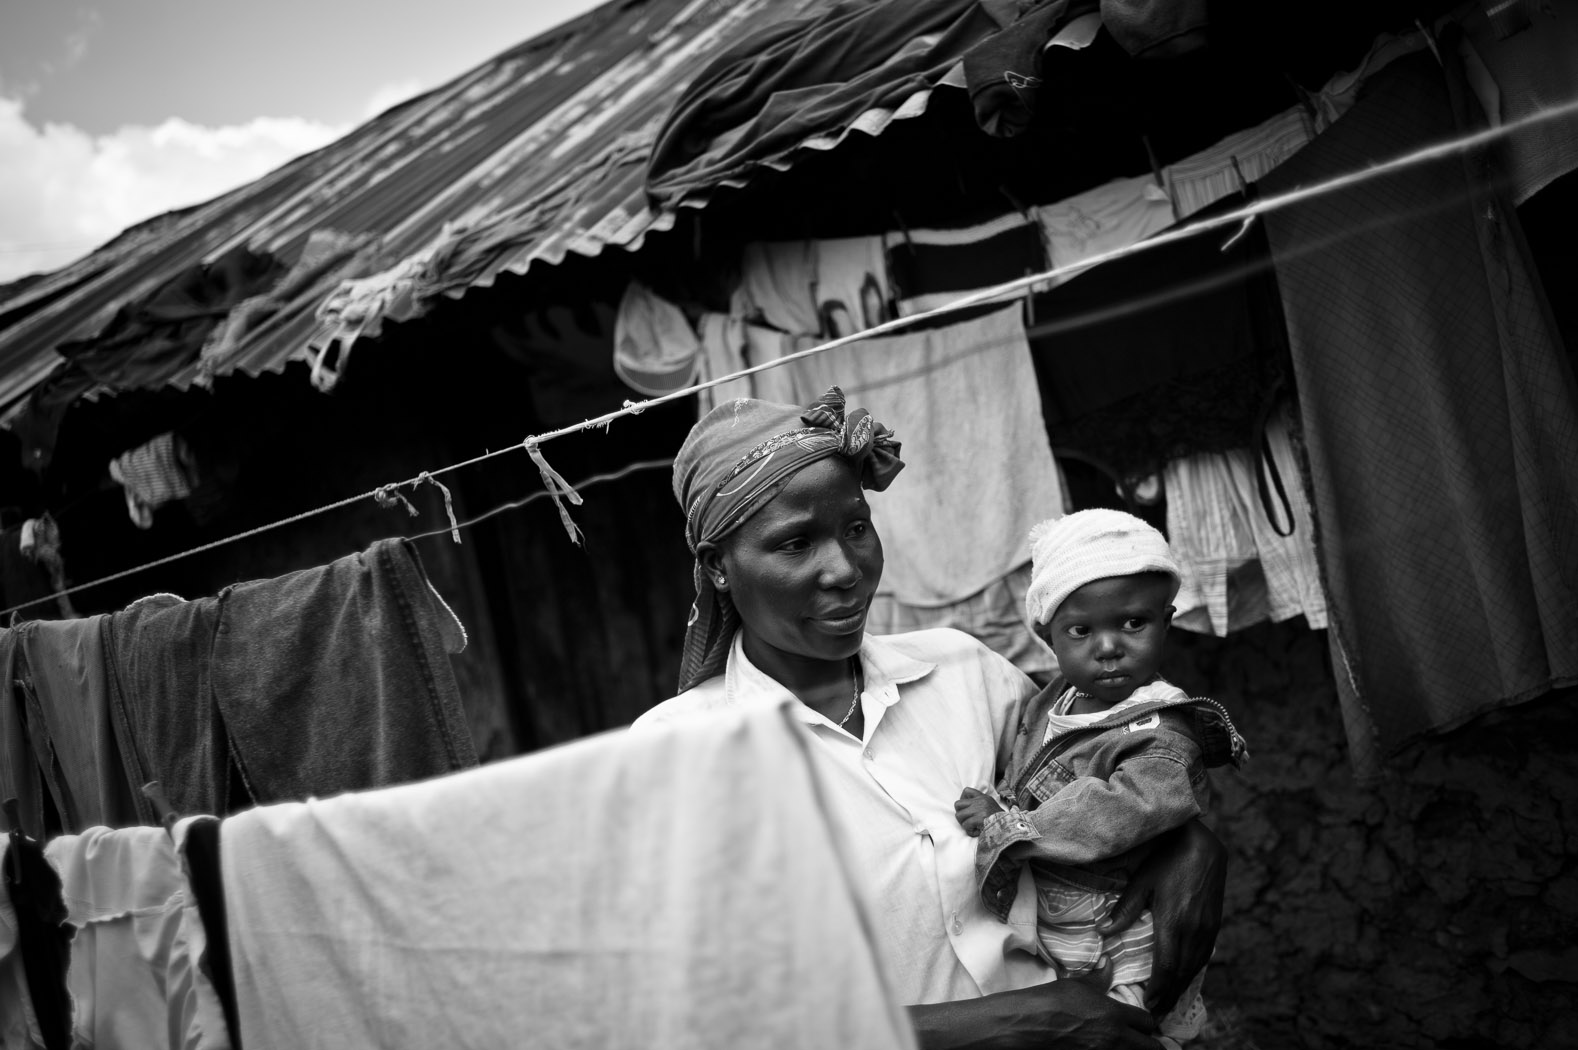 """In the Korogocho slum of Nairobi, Kenya, another side of the drought can be seen. Whilst food is available in the markets here, the huge impact that failed rains have had on the price of food, exacerbated by a global and regional fuel crisis, has pushed many families to the brink.  Rosemary Auma and her daughter, Millicent Mukundi, stand in the yard of their home in the slums. Millicent is suffering from malnutrition; Rosemary says that with only casual work for her and her husband, it is difficult for her family to have more than one meal a day.  """"Life is much harder in the city, if there is no work you won't eat"""", she says."""